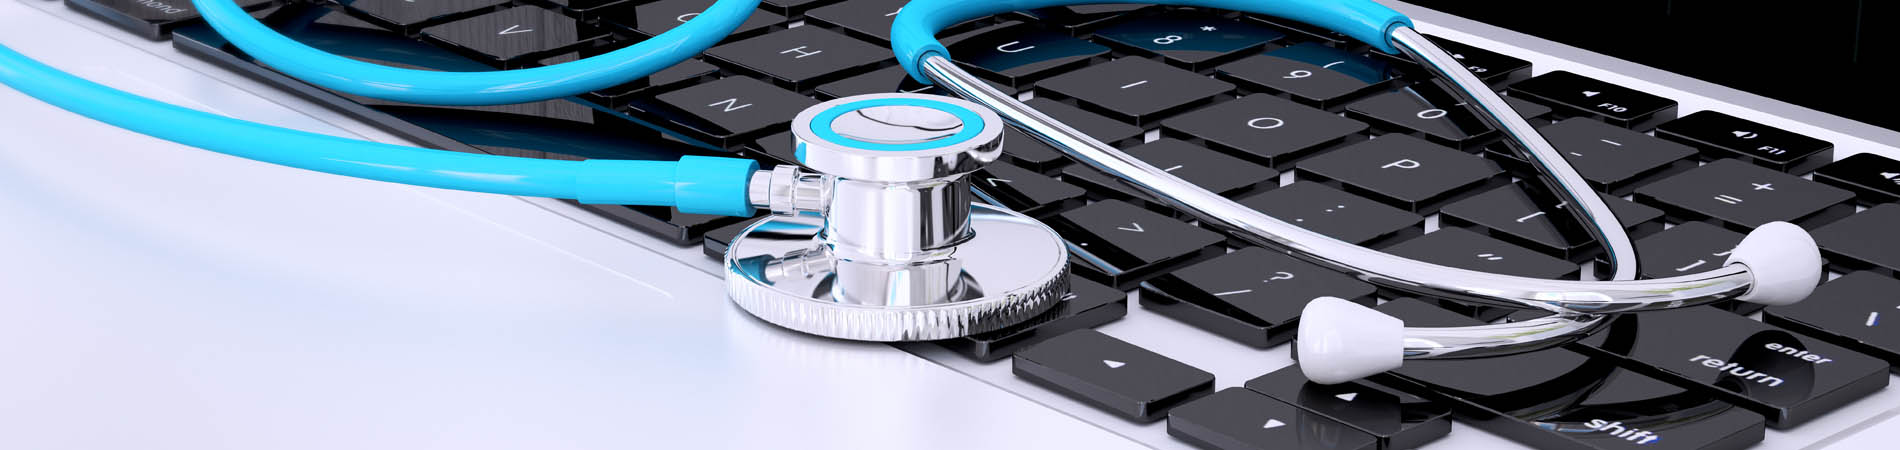 a stethoscope resting on a computer to represent HIPAA addressable and required security measures